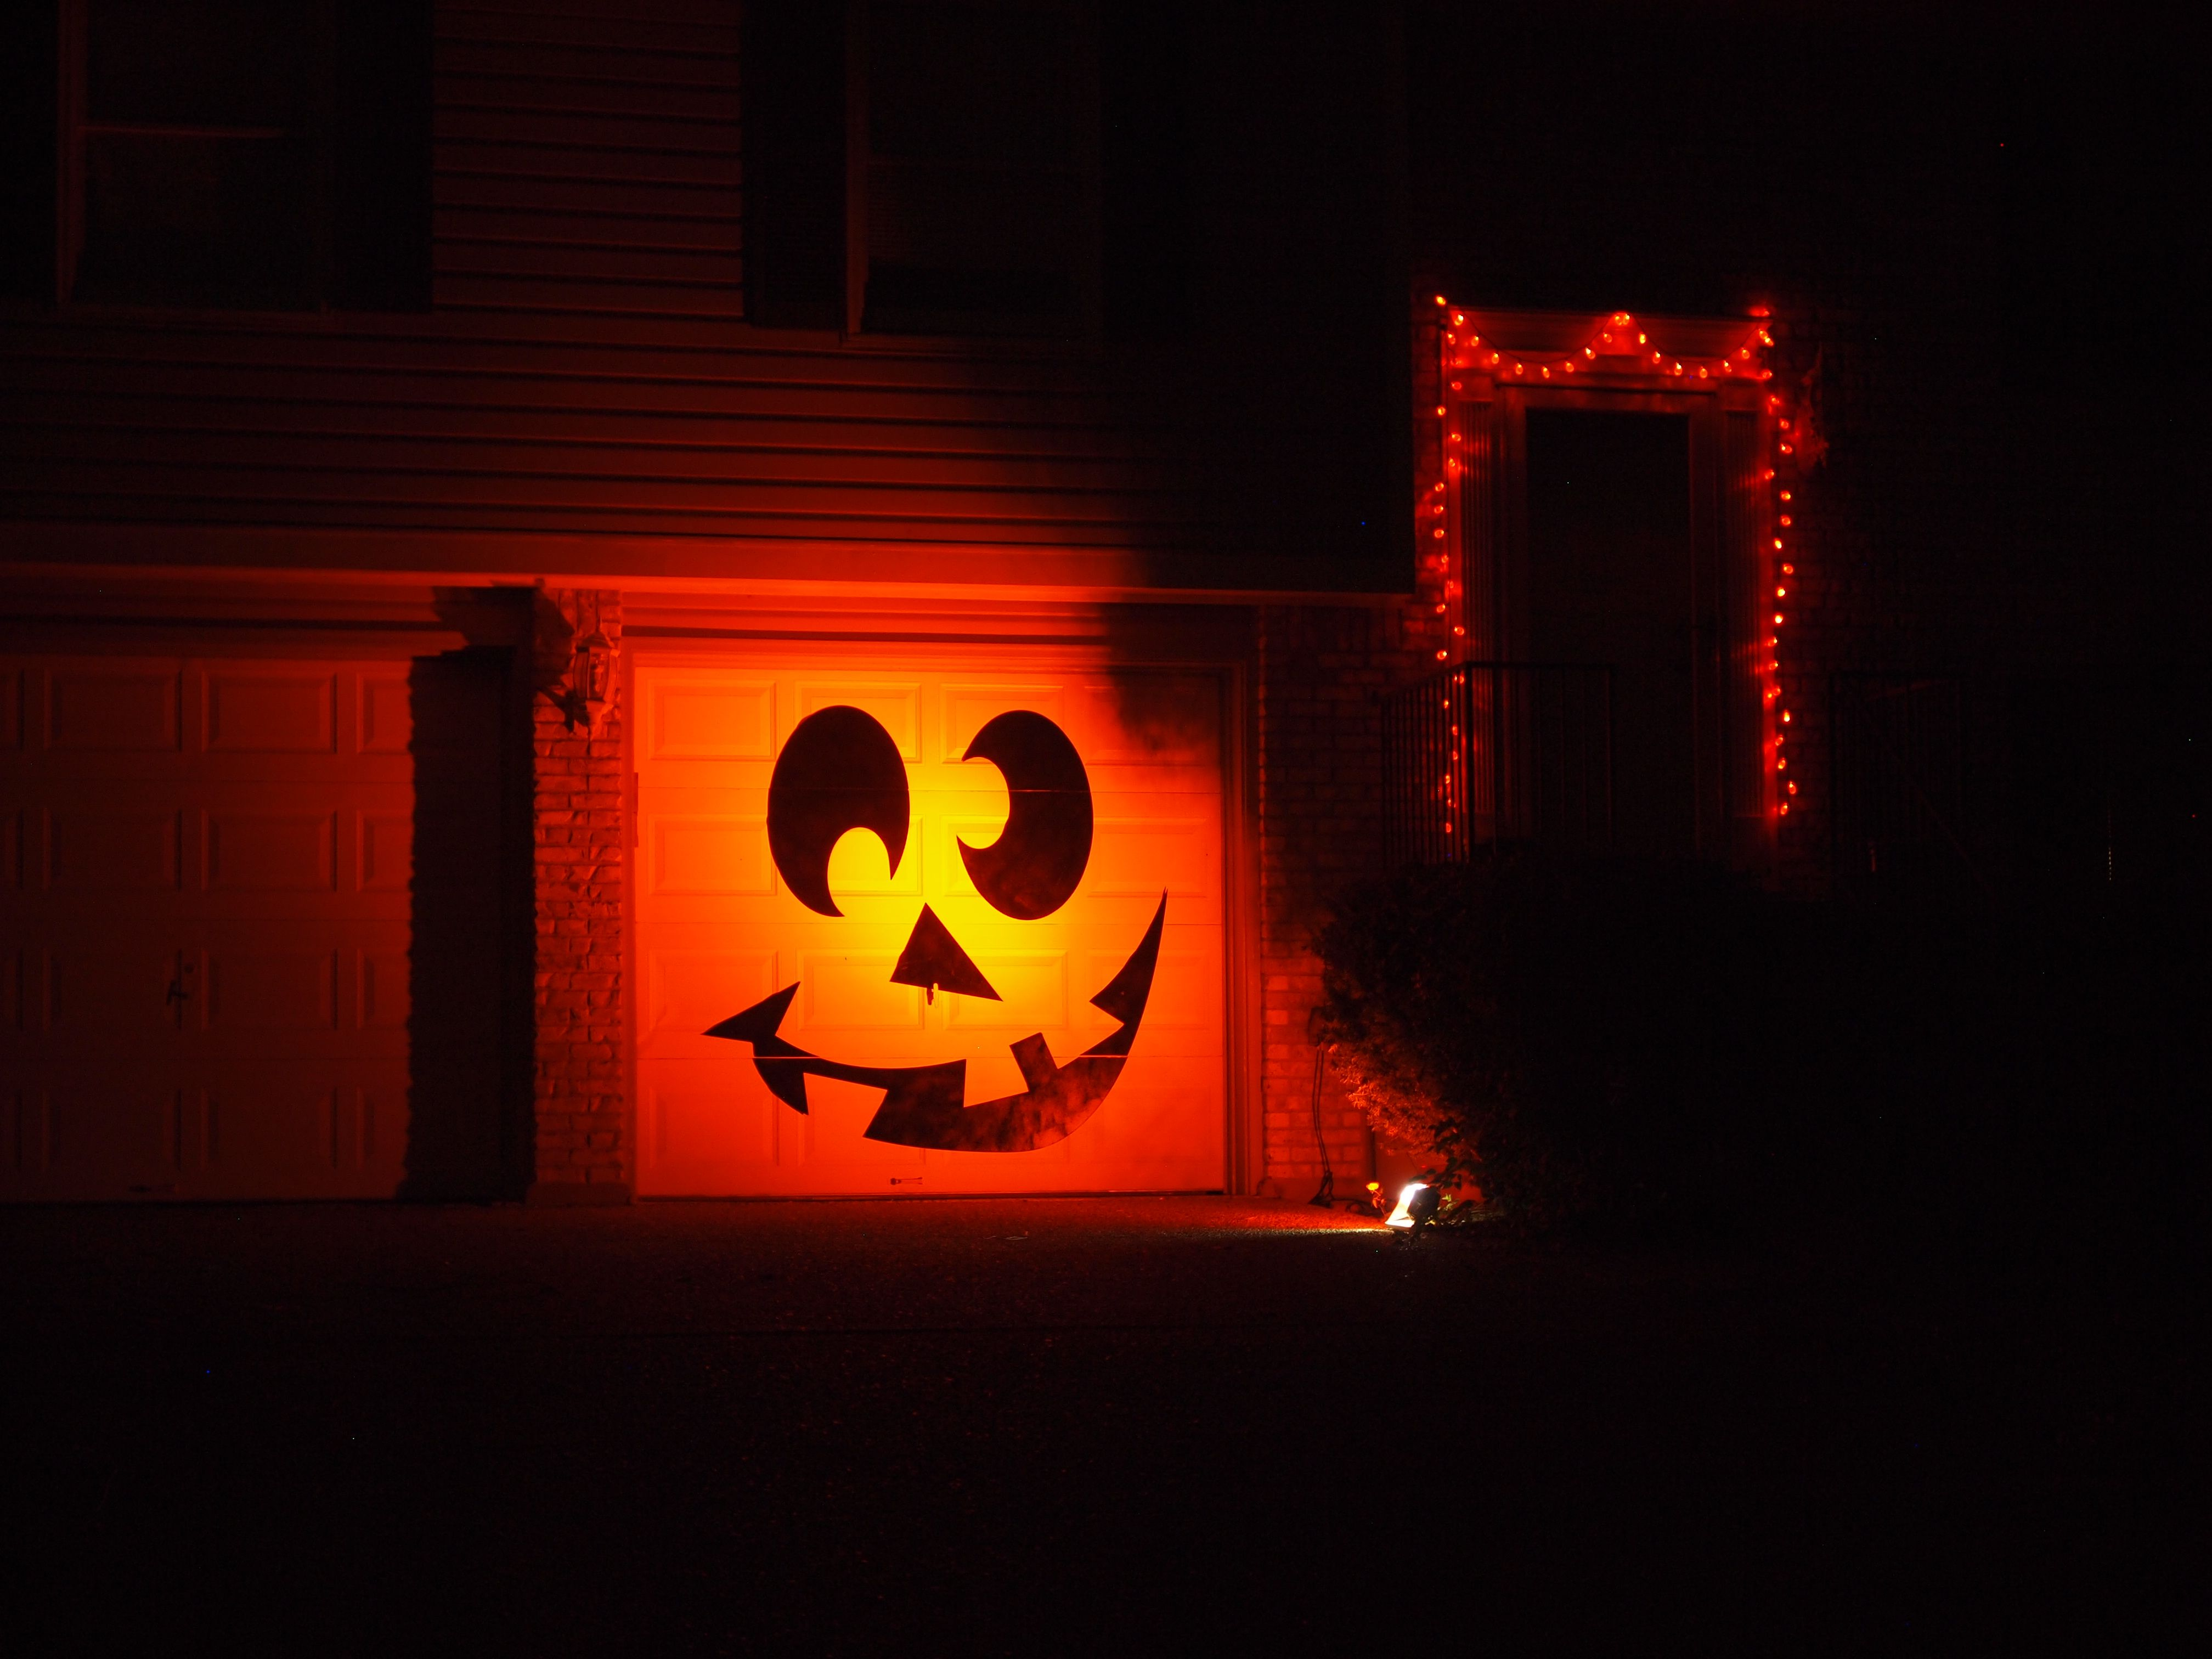 Halloween Decorations 2013 - Laser cut hardboard painted black and mounted on garage door. Illuminated by a LED floodlight with an orange filter. & Halloween Decorations 2013 - Laser cut 1/8